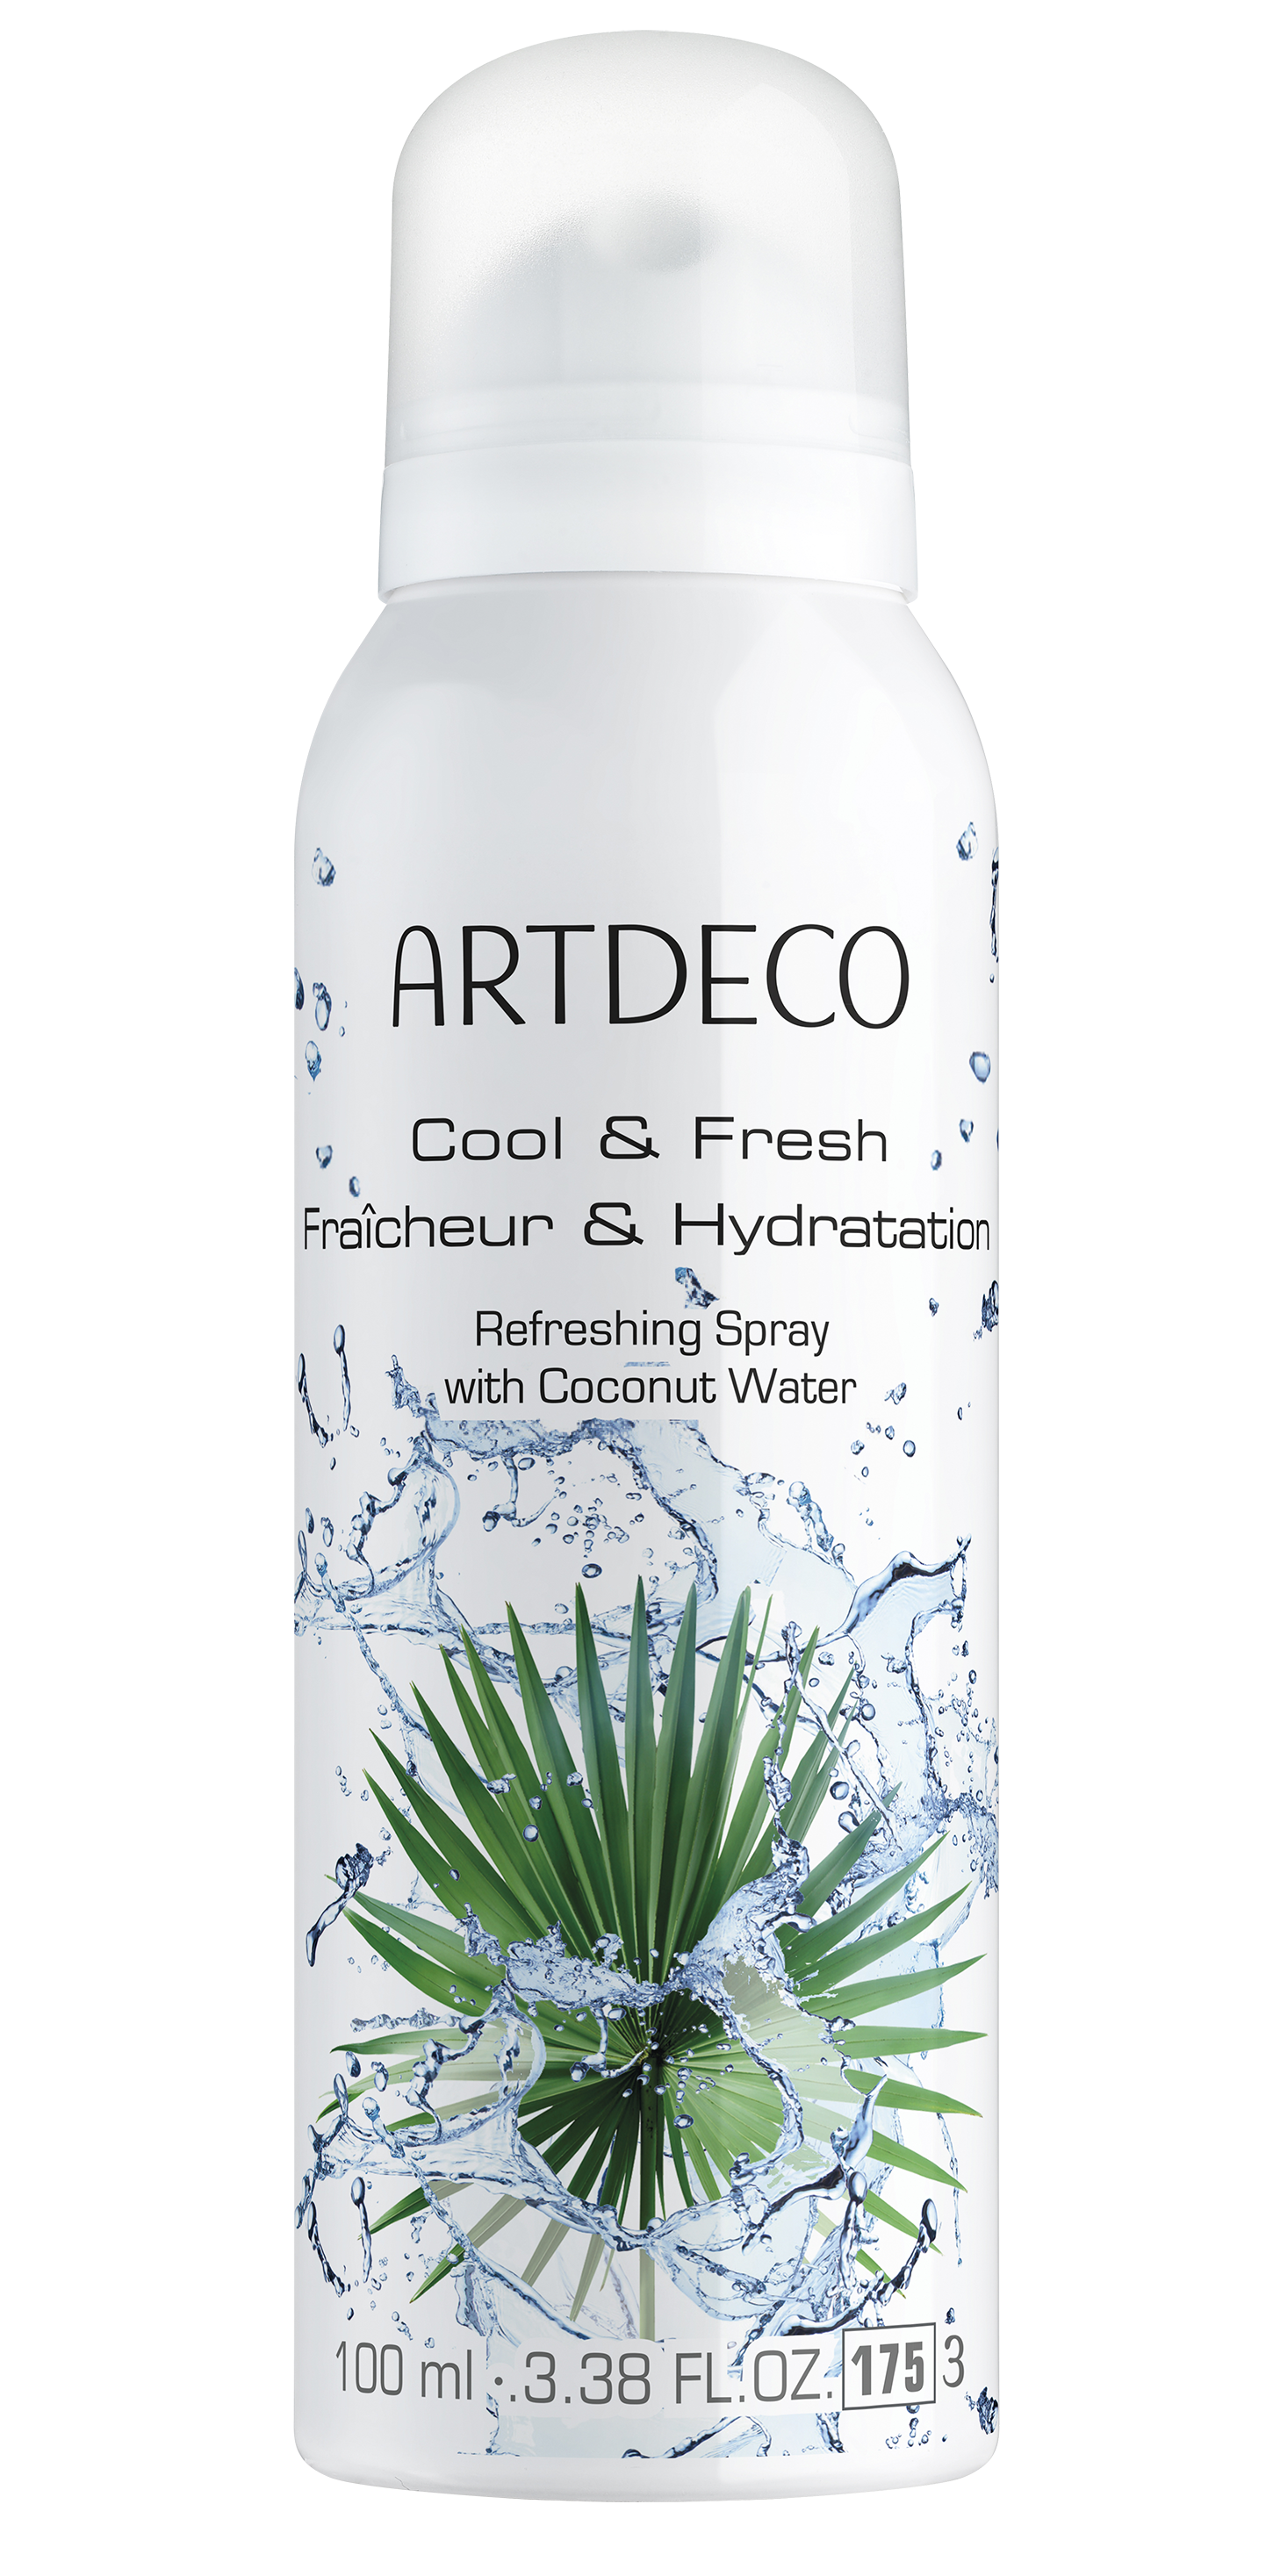 artdeco Cool & Fresh Refreshing Spray With Coconut Water